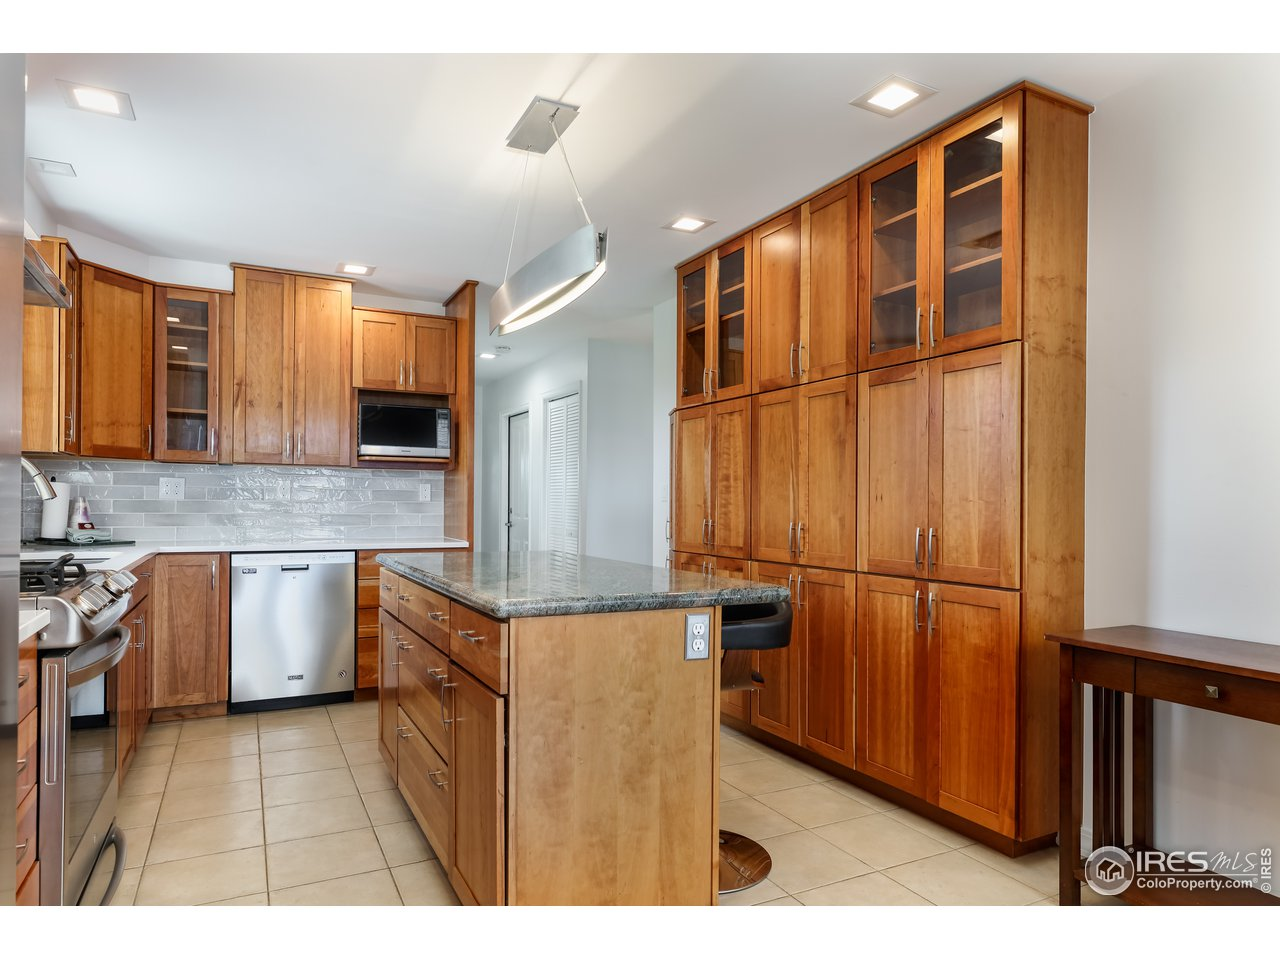 Kitchen w/ Ample Cabinet Space